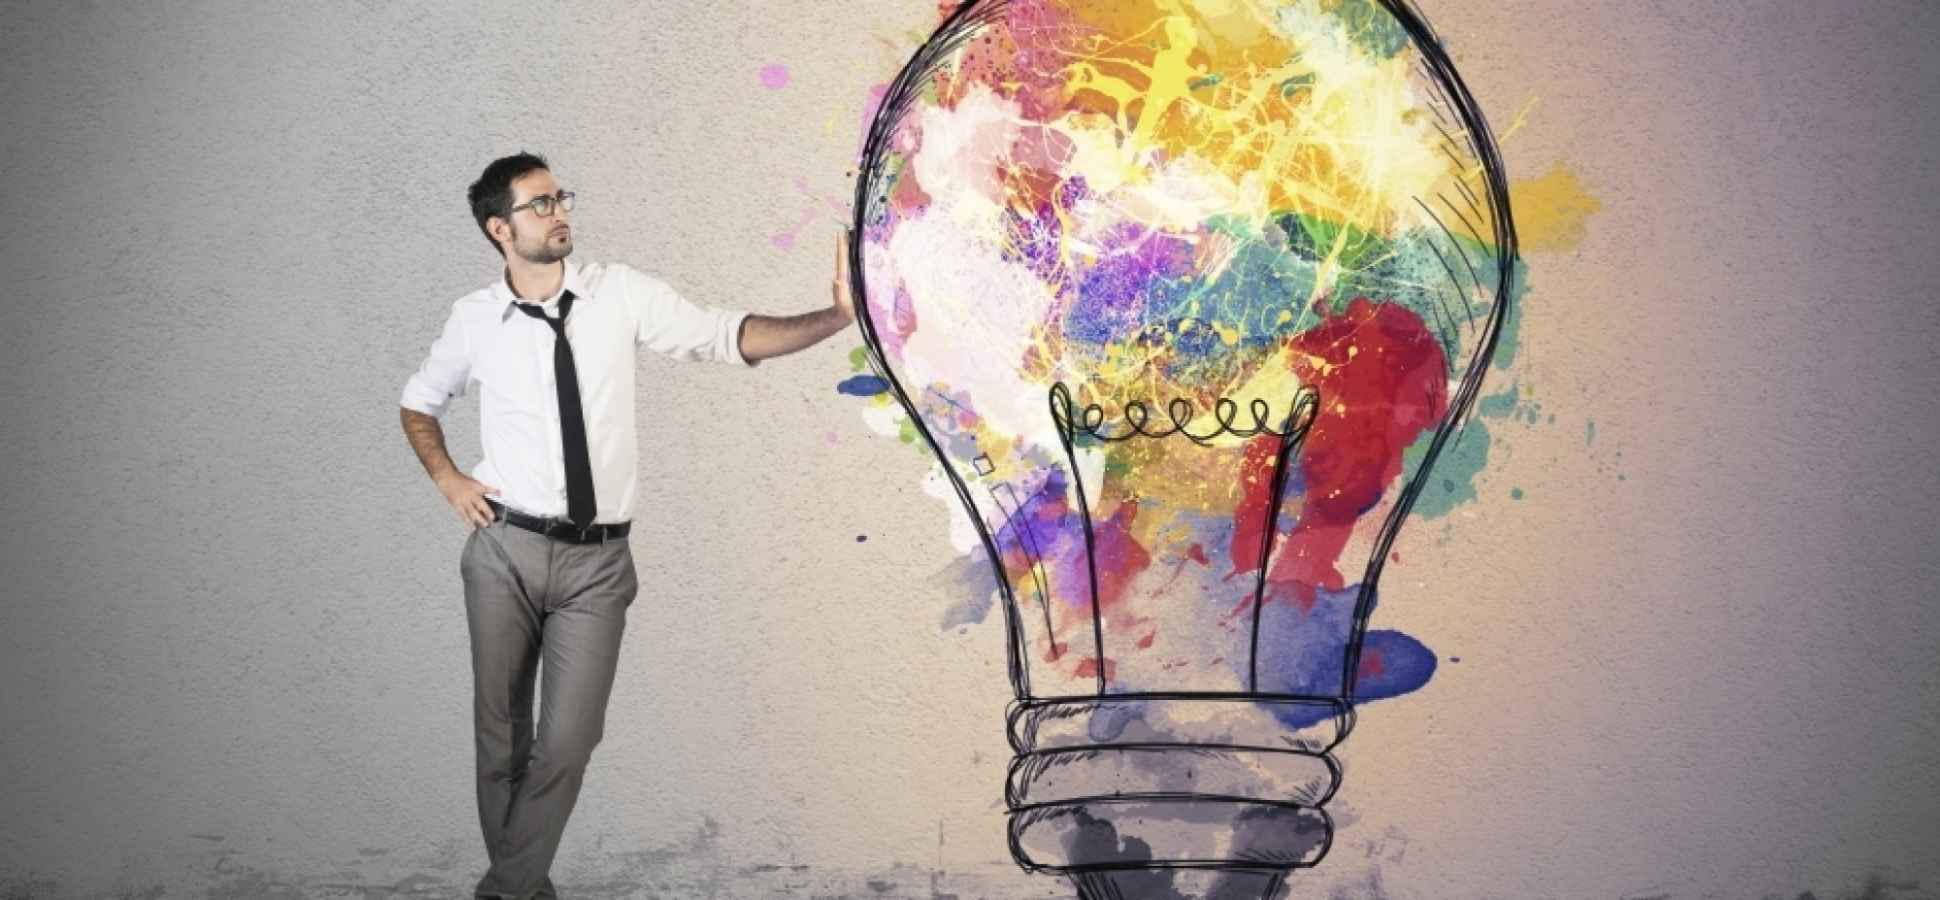 25 Simple Ways for Entrepreneurs to Find Inspiration